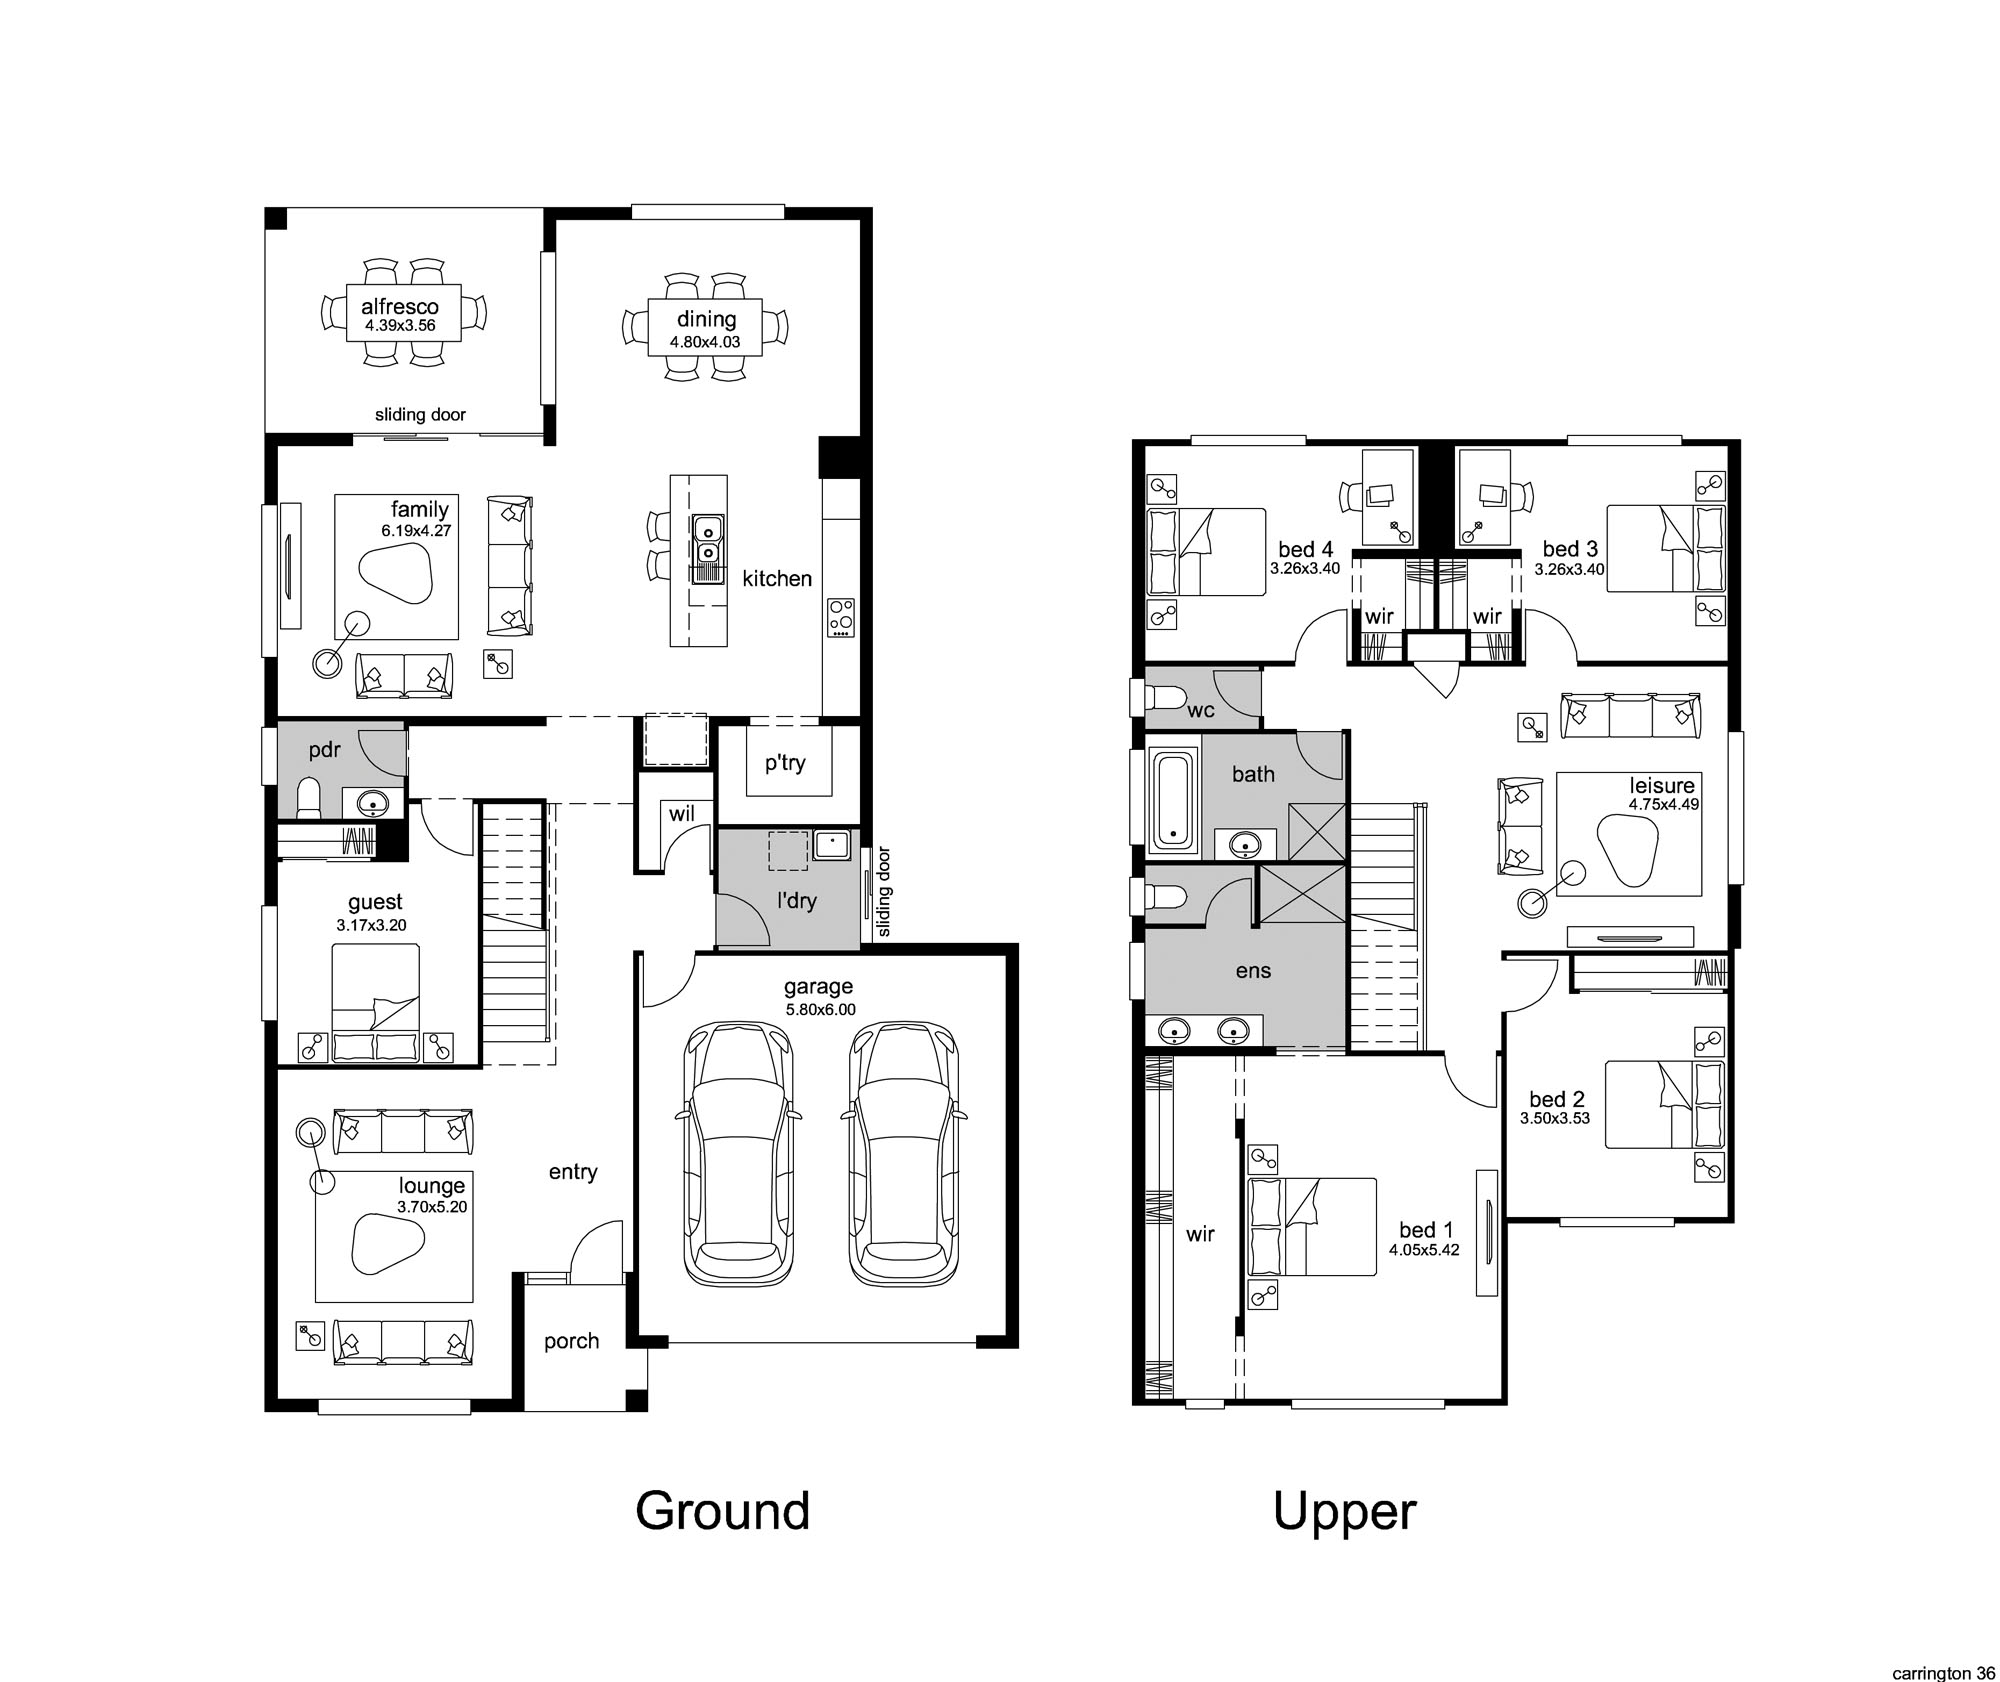 Floor Plan 1 flipped